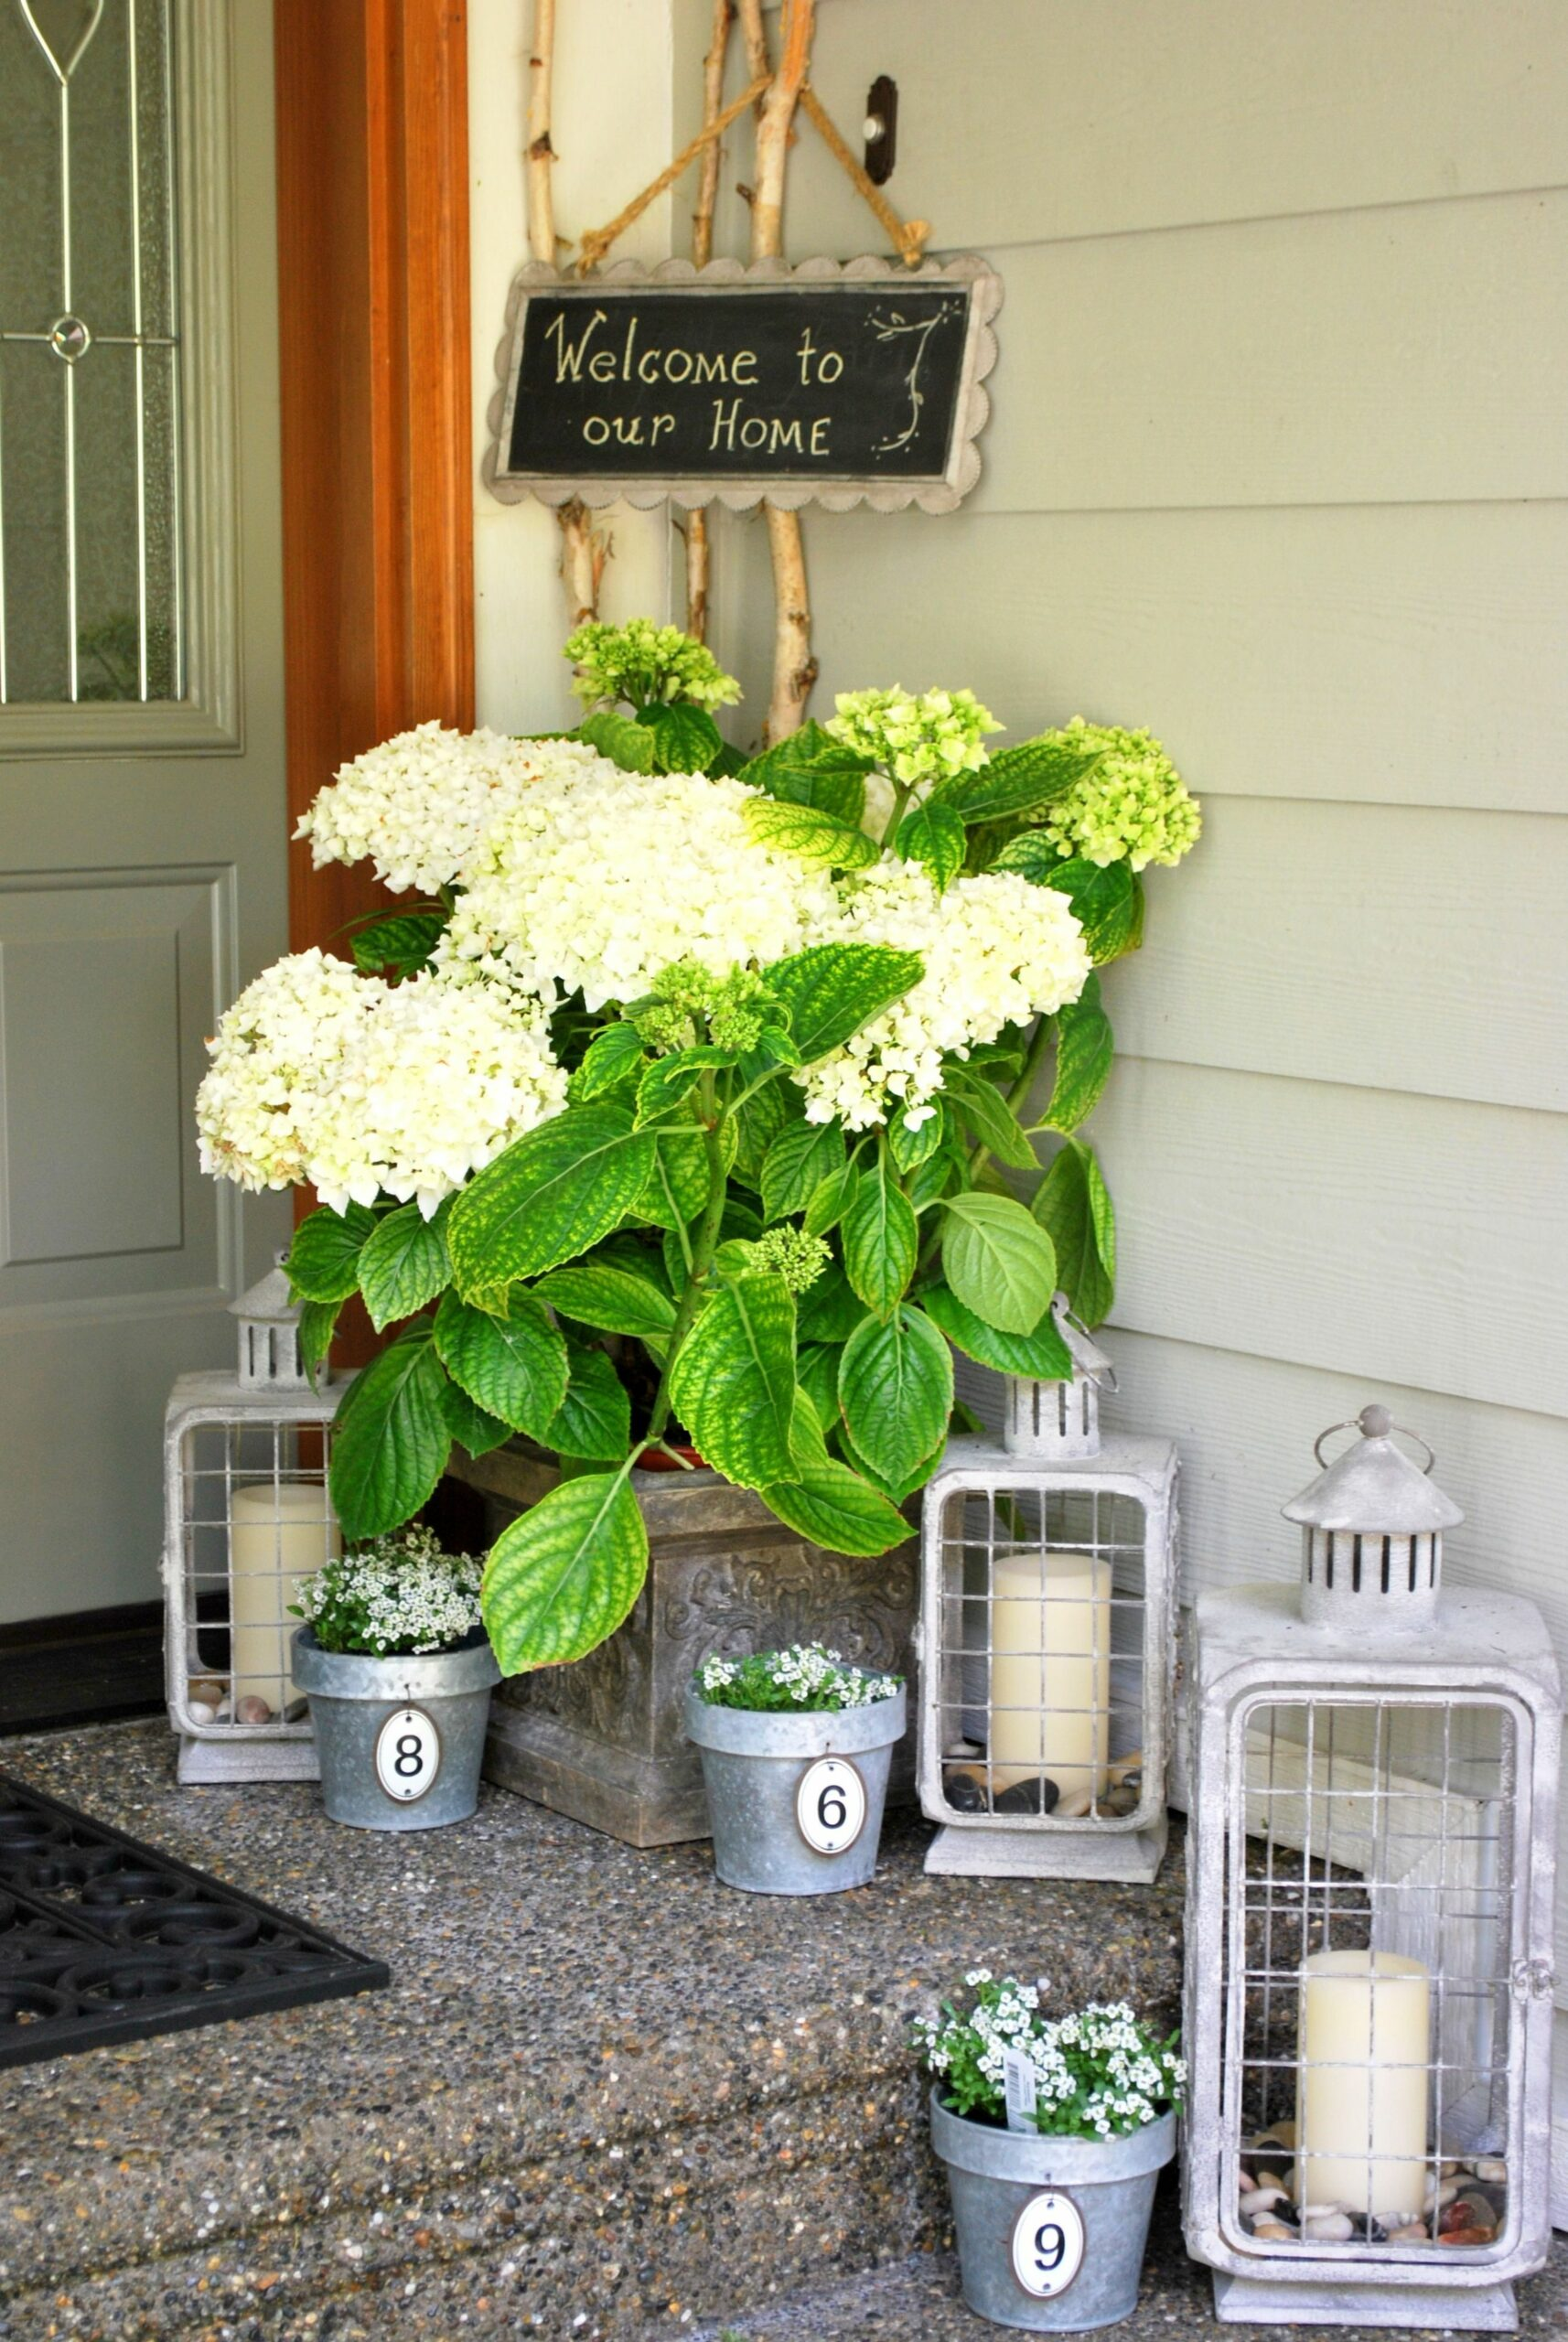 11 DIY Ways to Decorate Your Porch This Summer (With images ...